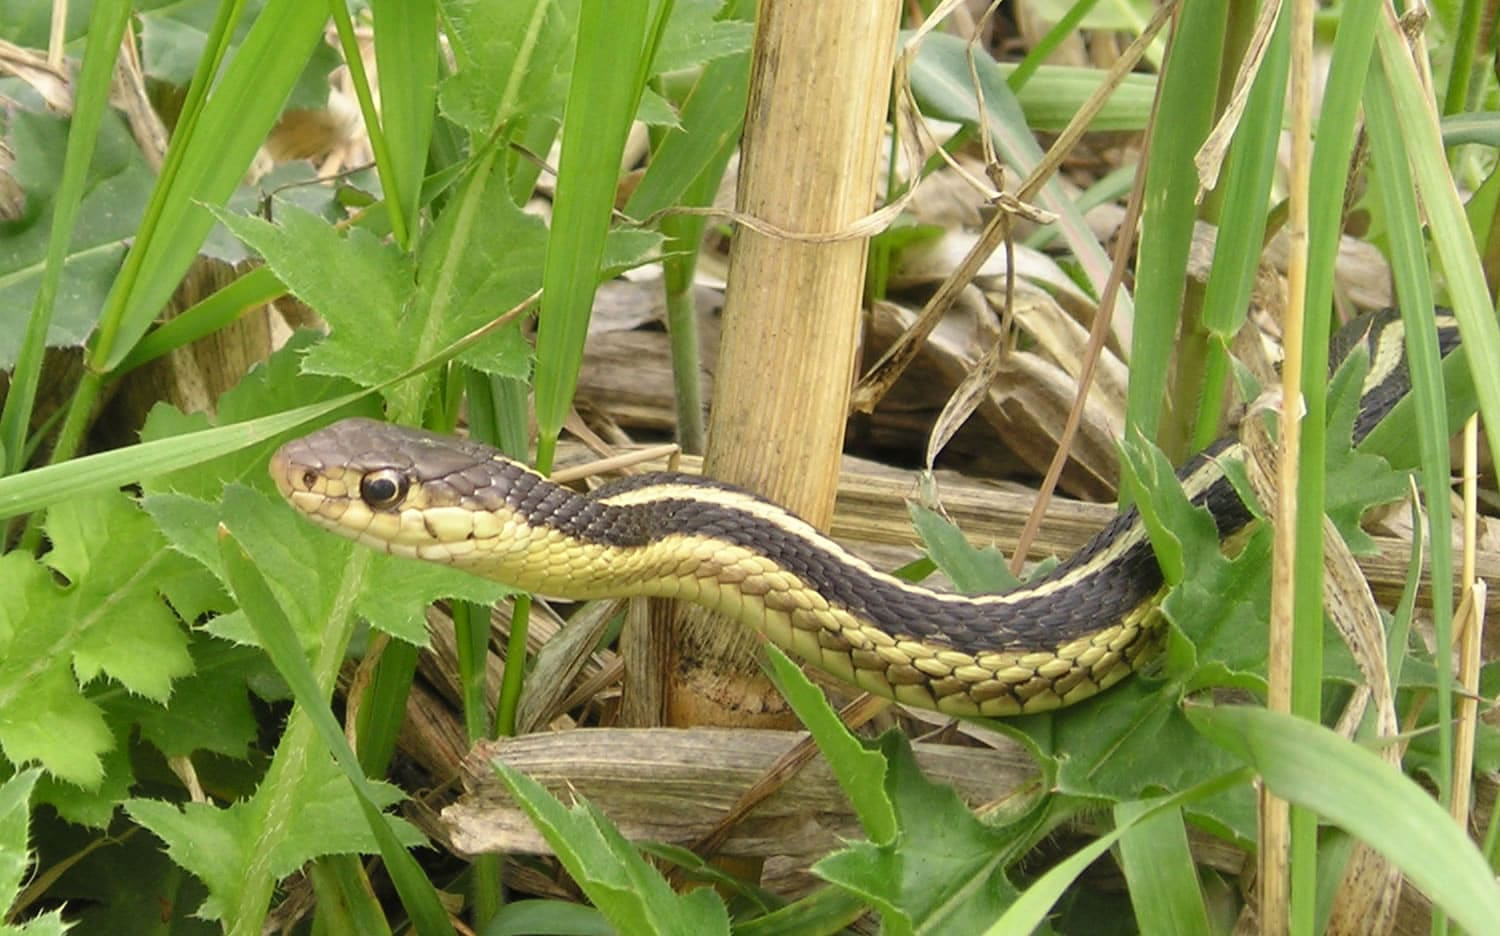 Garden Snake - Learn About Nature